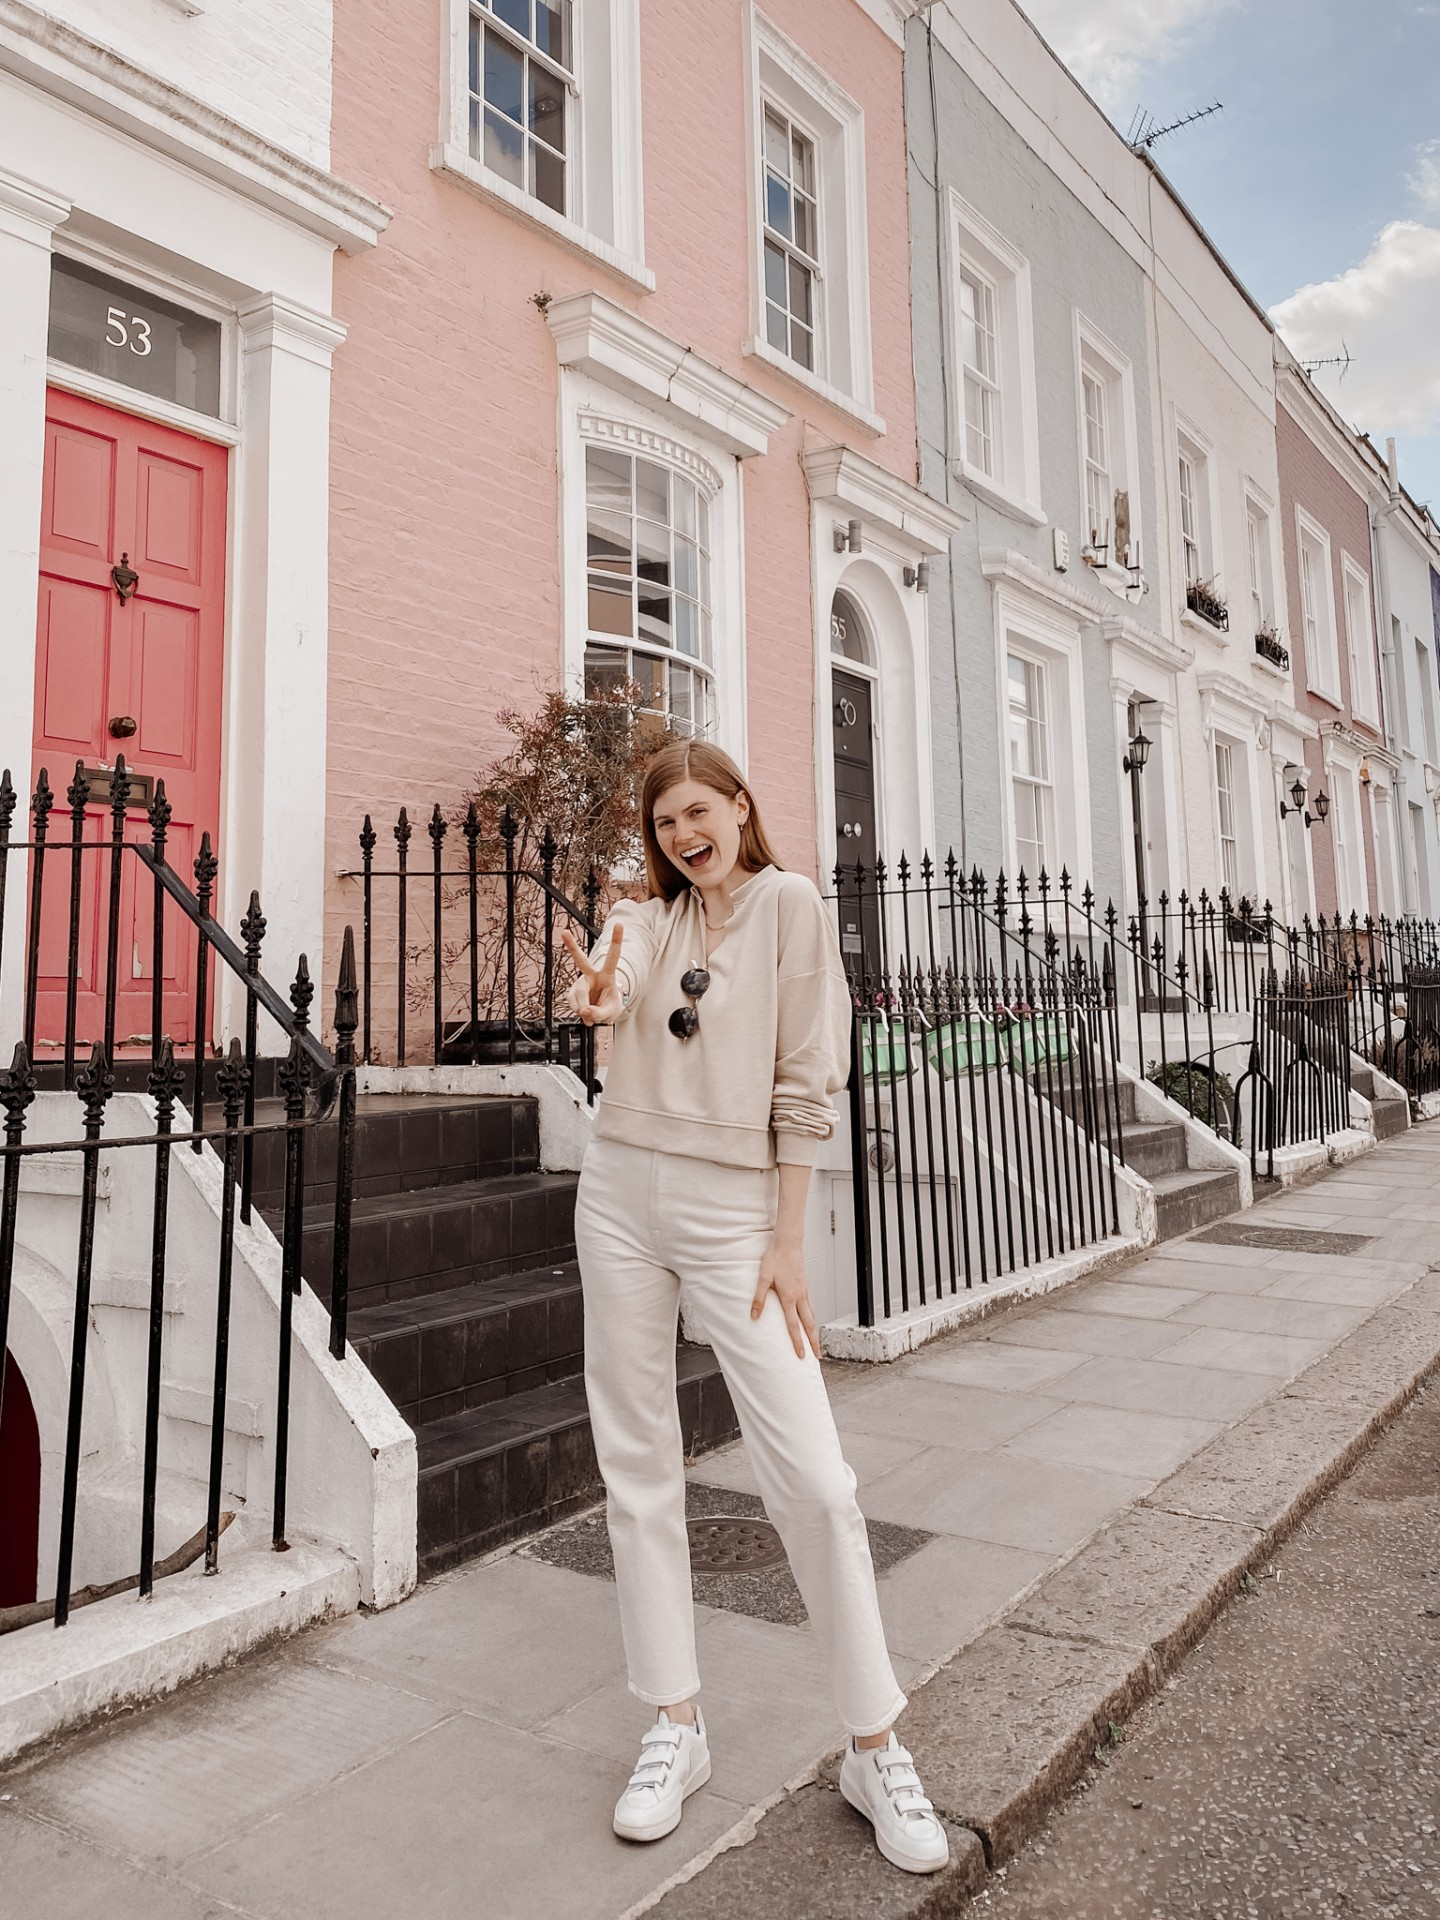 Lifestyle blogger Mollie Moore celebrates two years of living in London